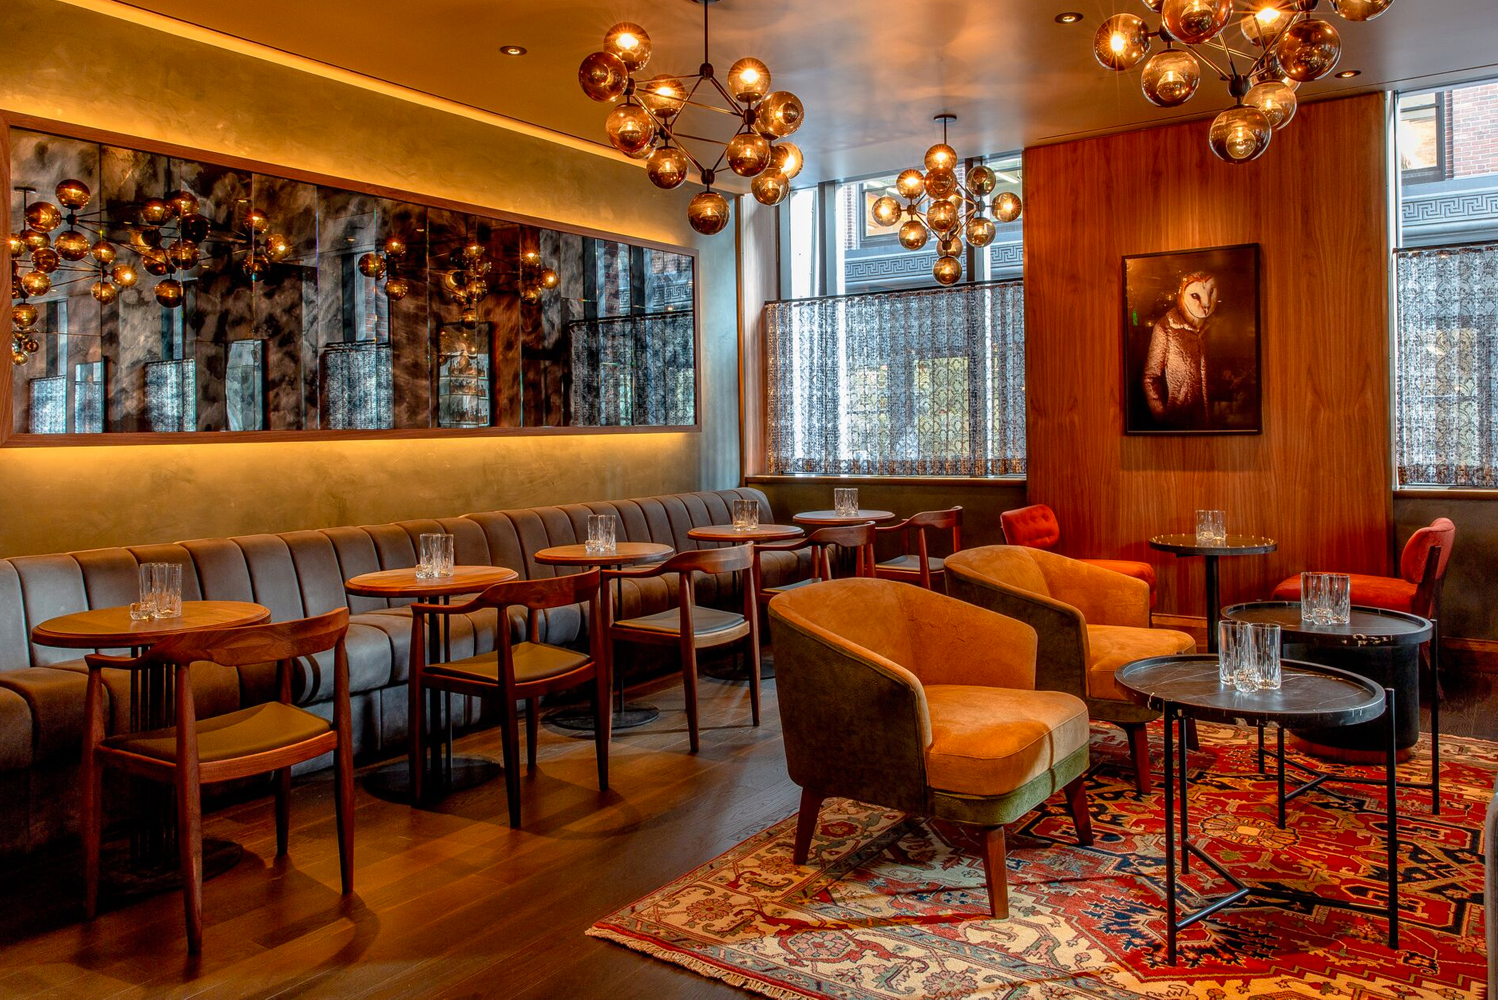 Las Vegas-based design and architecture firm Punch Architecture completed the makeover of the Highball Lounge, the on-site bar/restaurant of Boston's Kimpton Nine Zero.